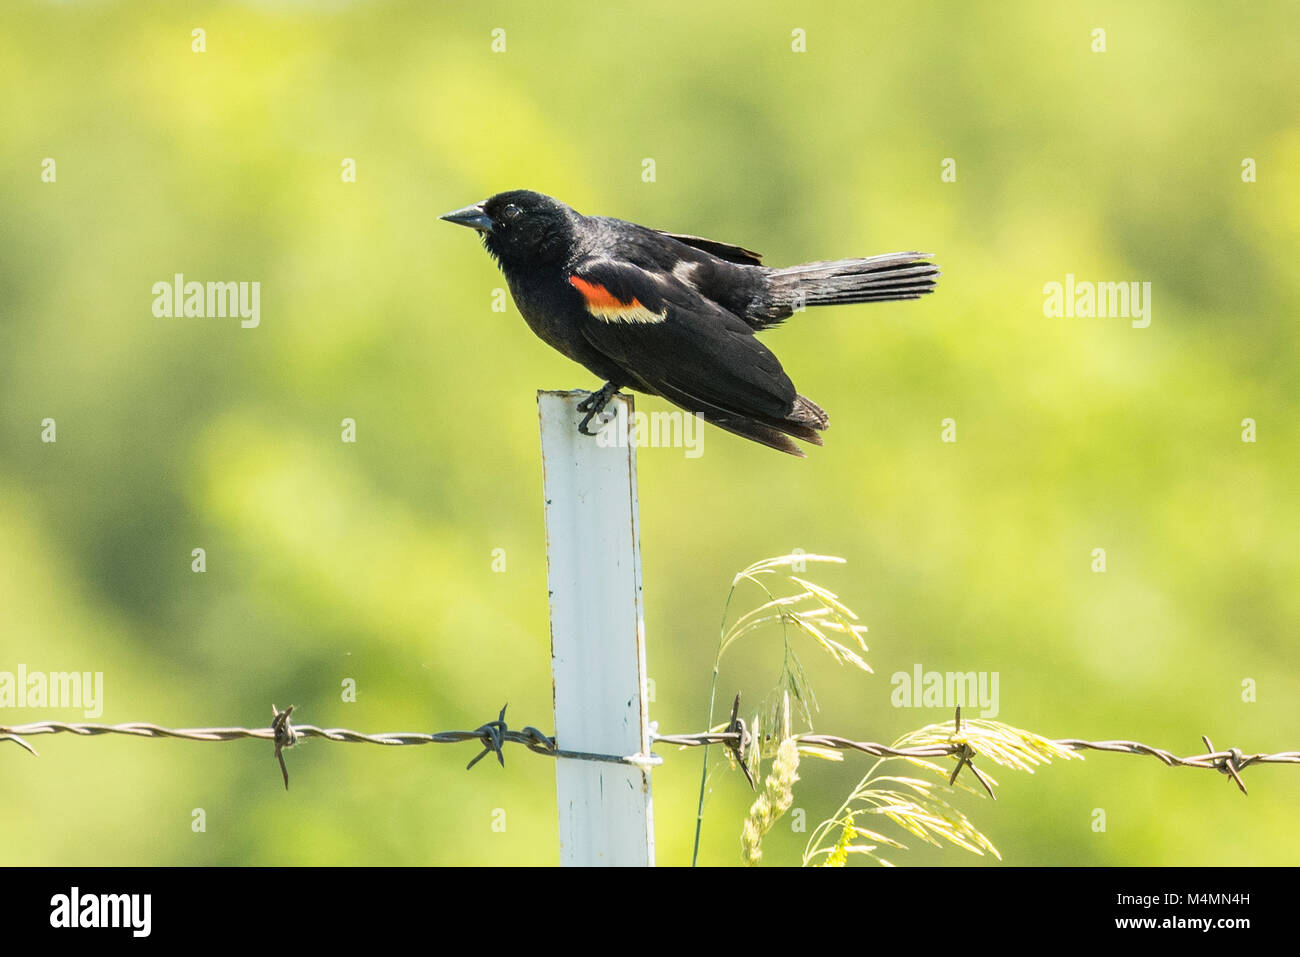 Male Red-winged Blackbird sitting on fence post. - Stock Image